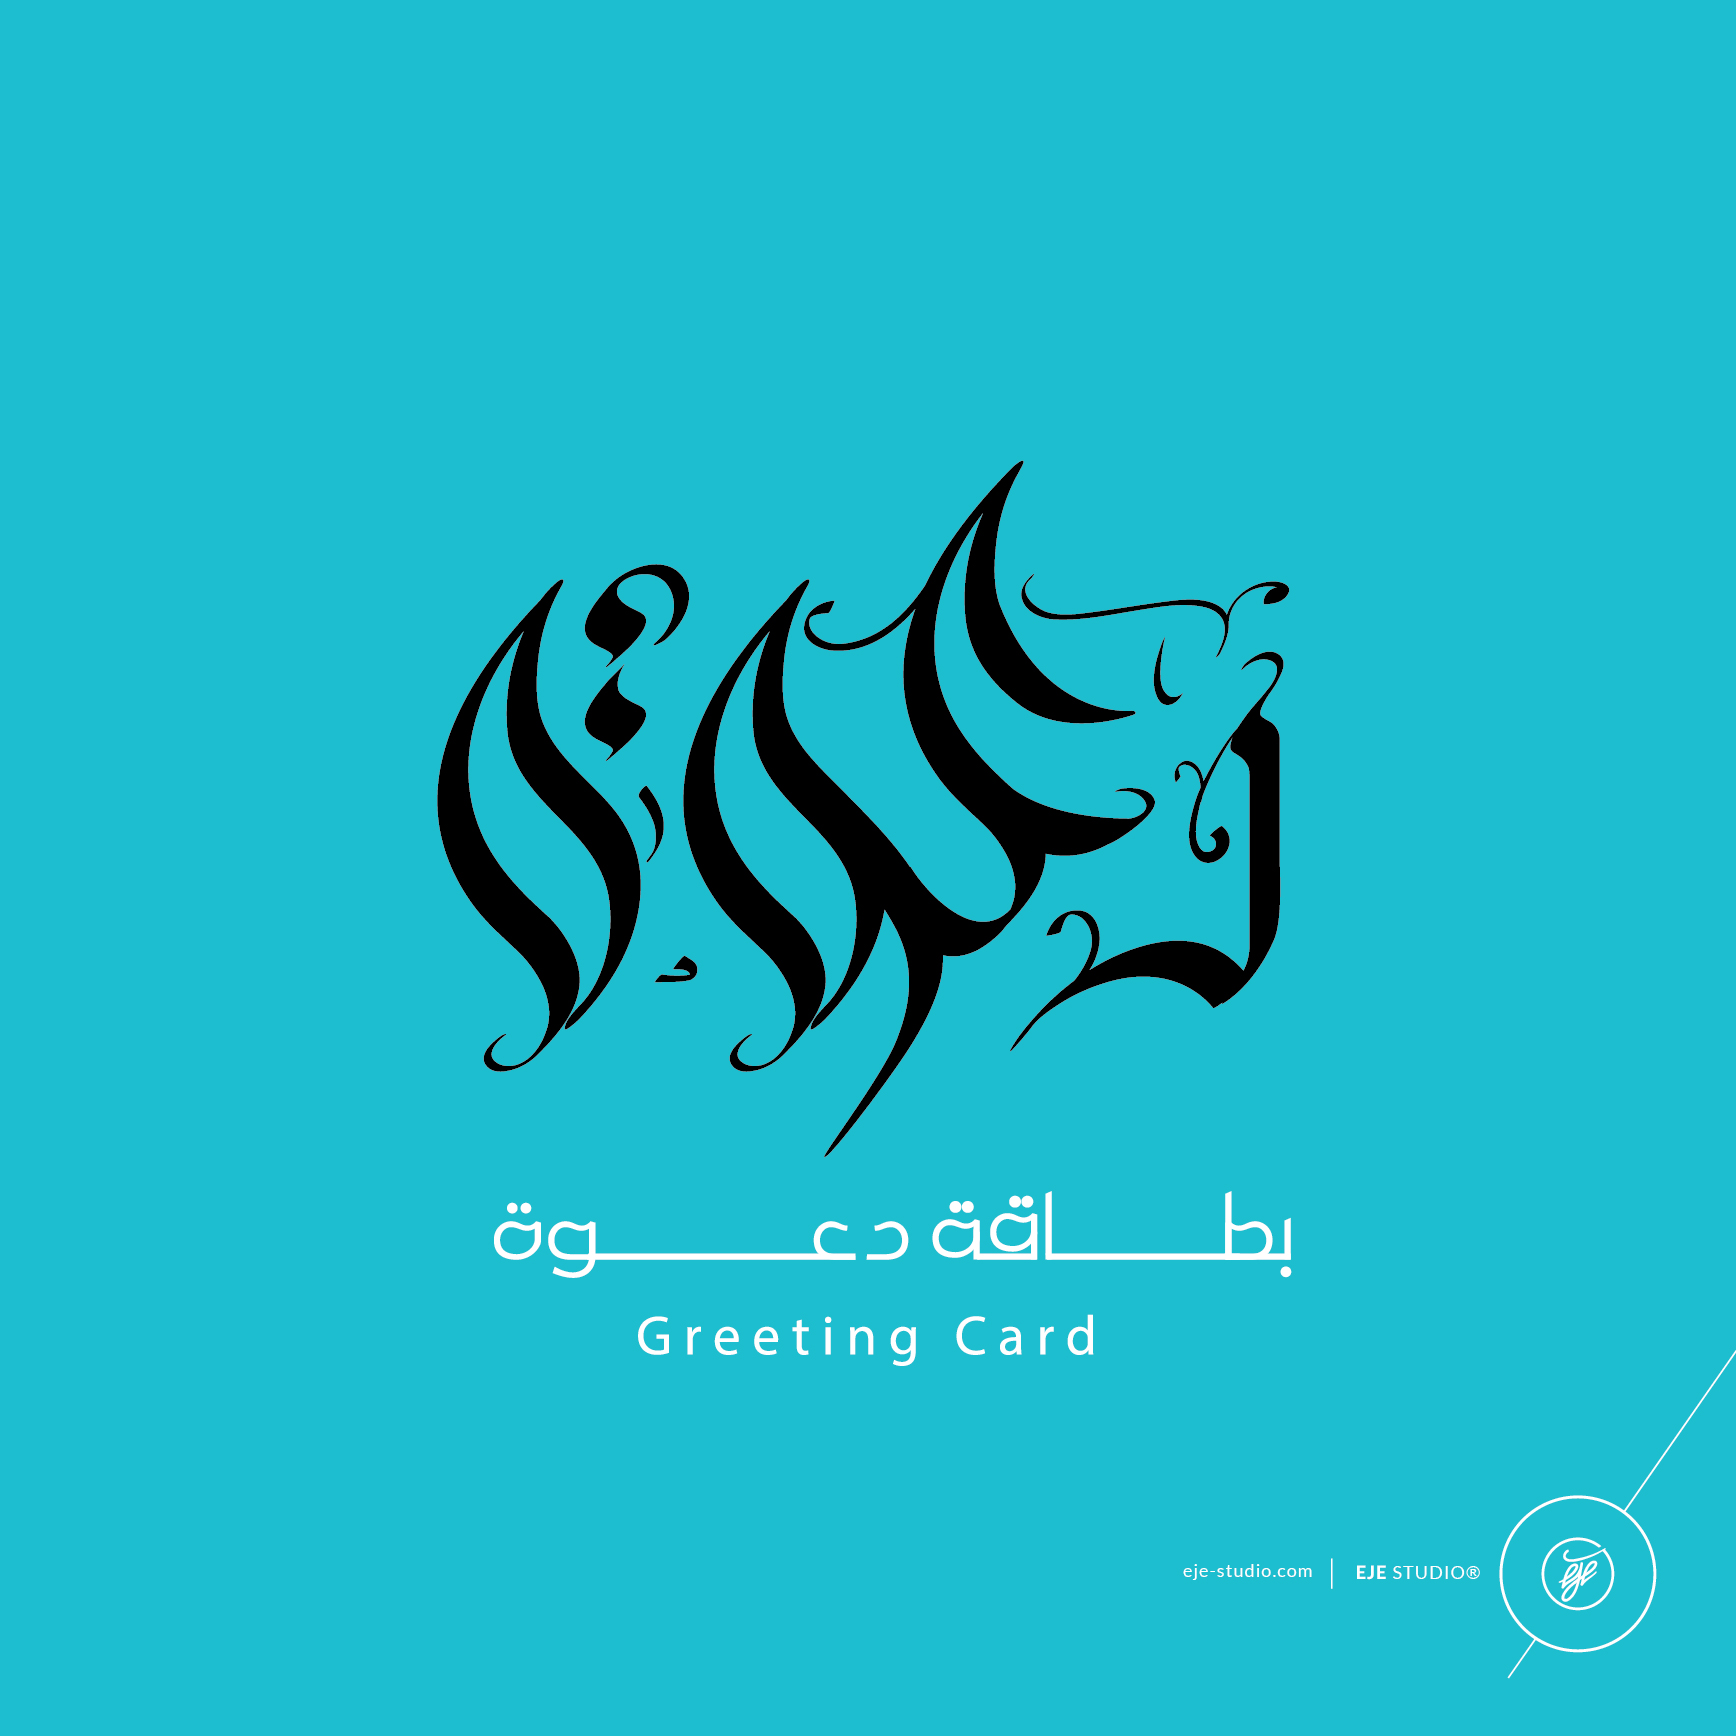 Modern Arabic Calligraphy By Eje Studio 12 By One Bh On